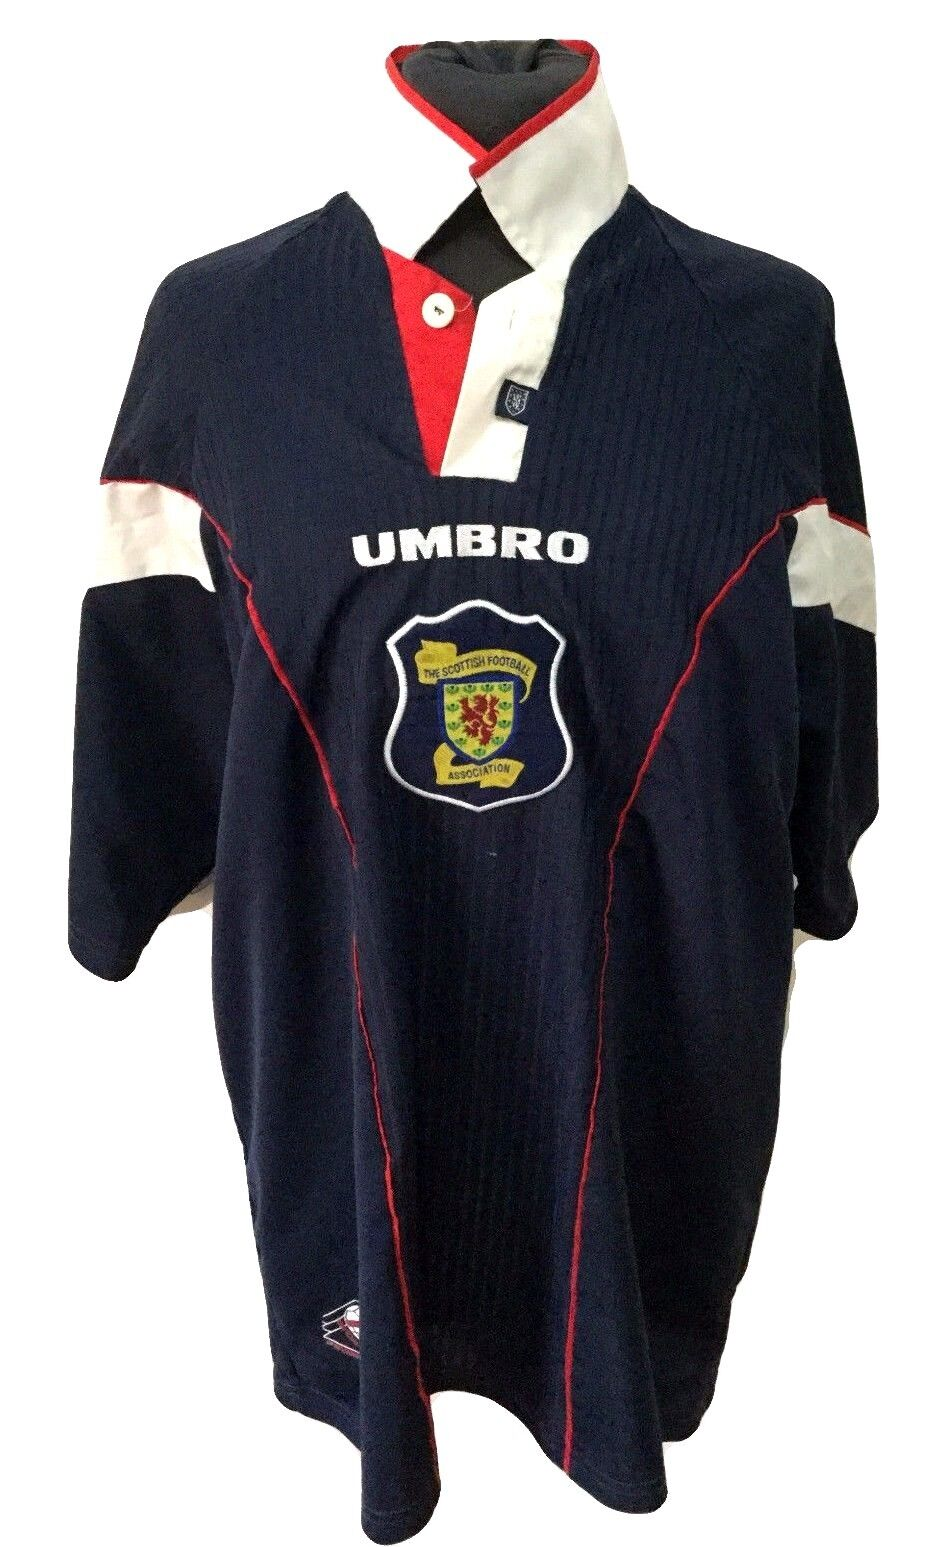 SCOTLAND TRIKOT 1996 -1998 HOME UMBRO FOOTBALL SHIRT VINTAGE Größe XL